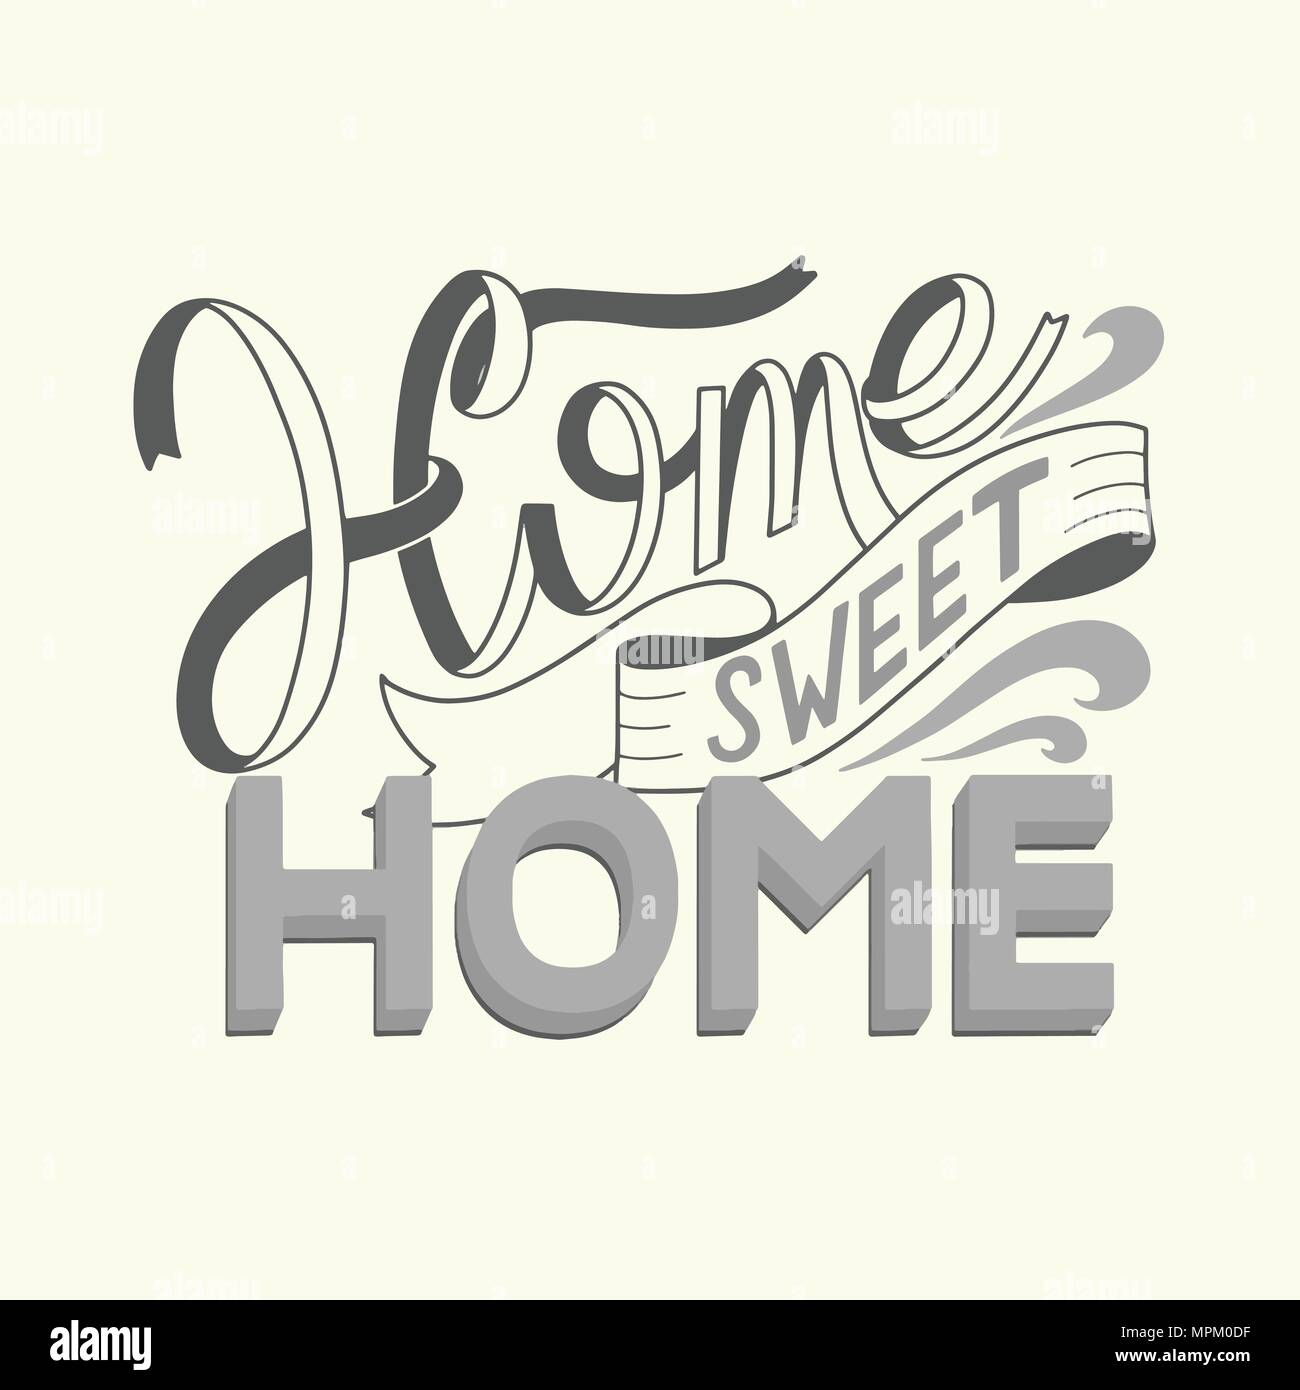 Home sweet home lettering. Vector elements for invitations, posters, greeting cards. T-shirt design - Stock Vector